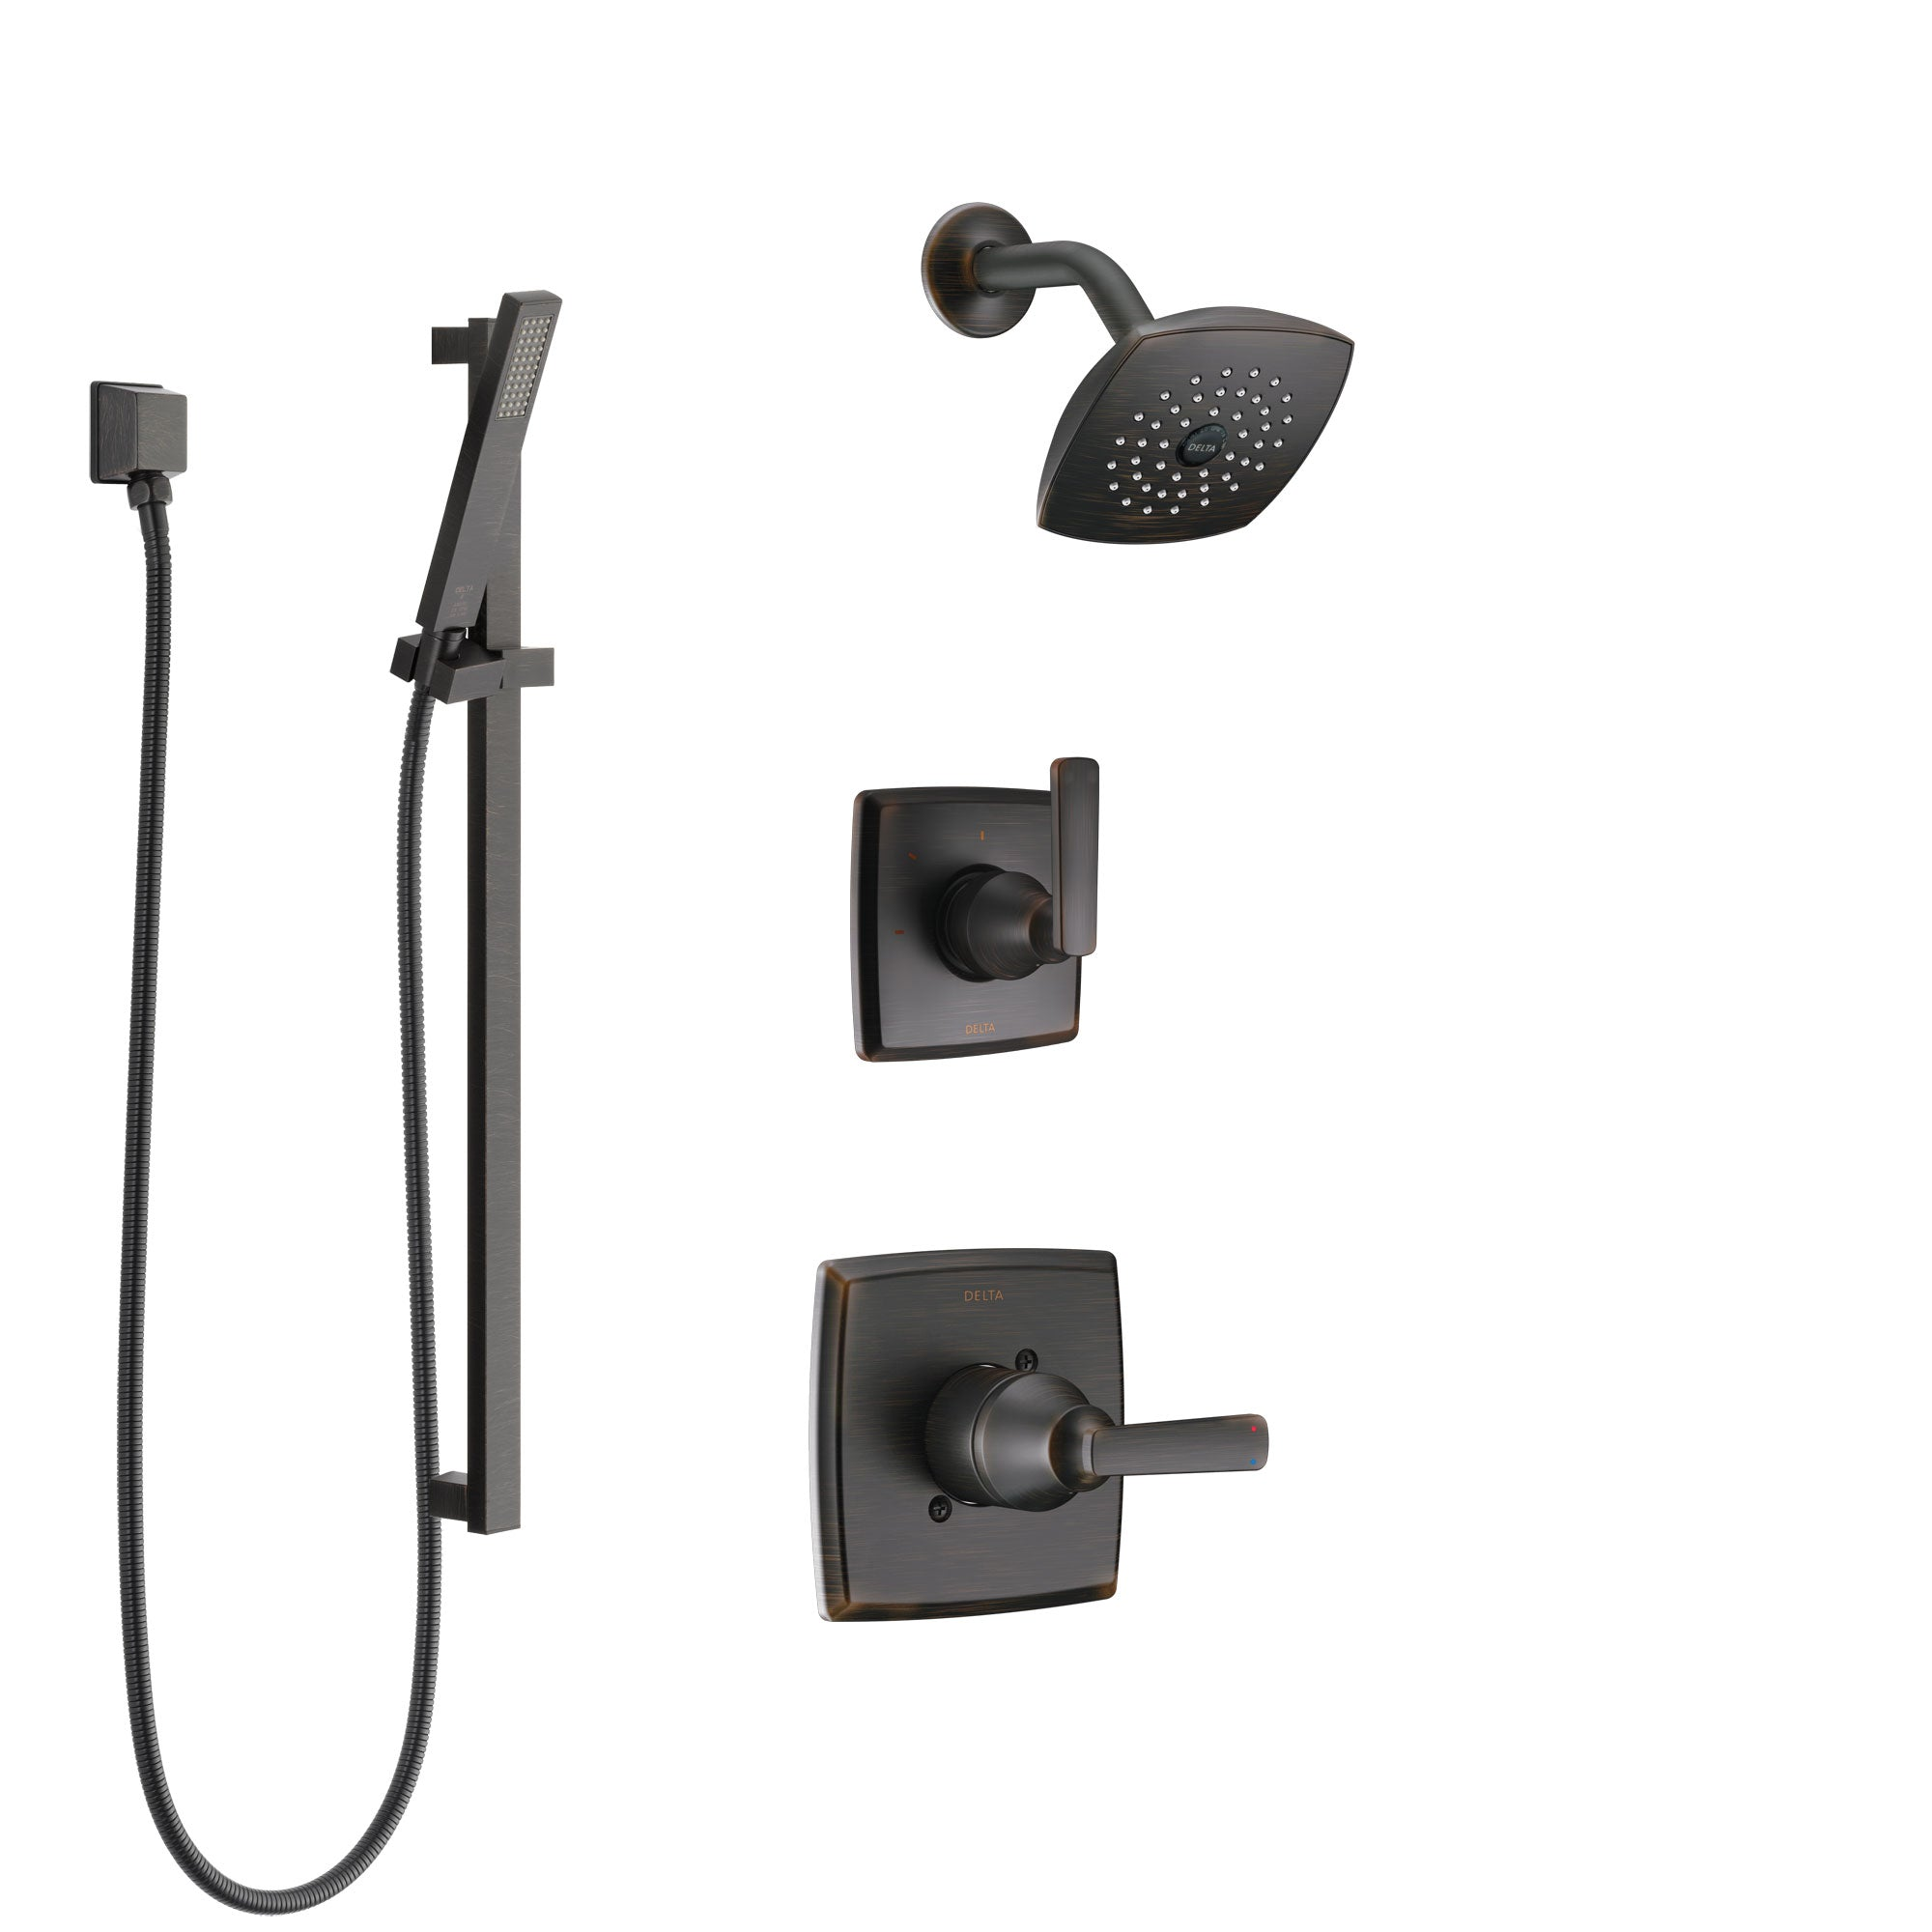 Delta Ashlyn Venetian Bronze Finish Shower System with Control Handle, 3-Setting Diverter, Showerhead, and Hand Shower with Slidebar SS142641RB4